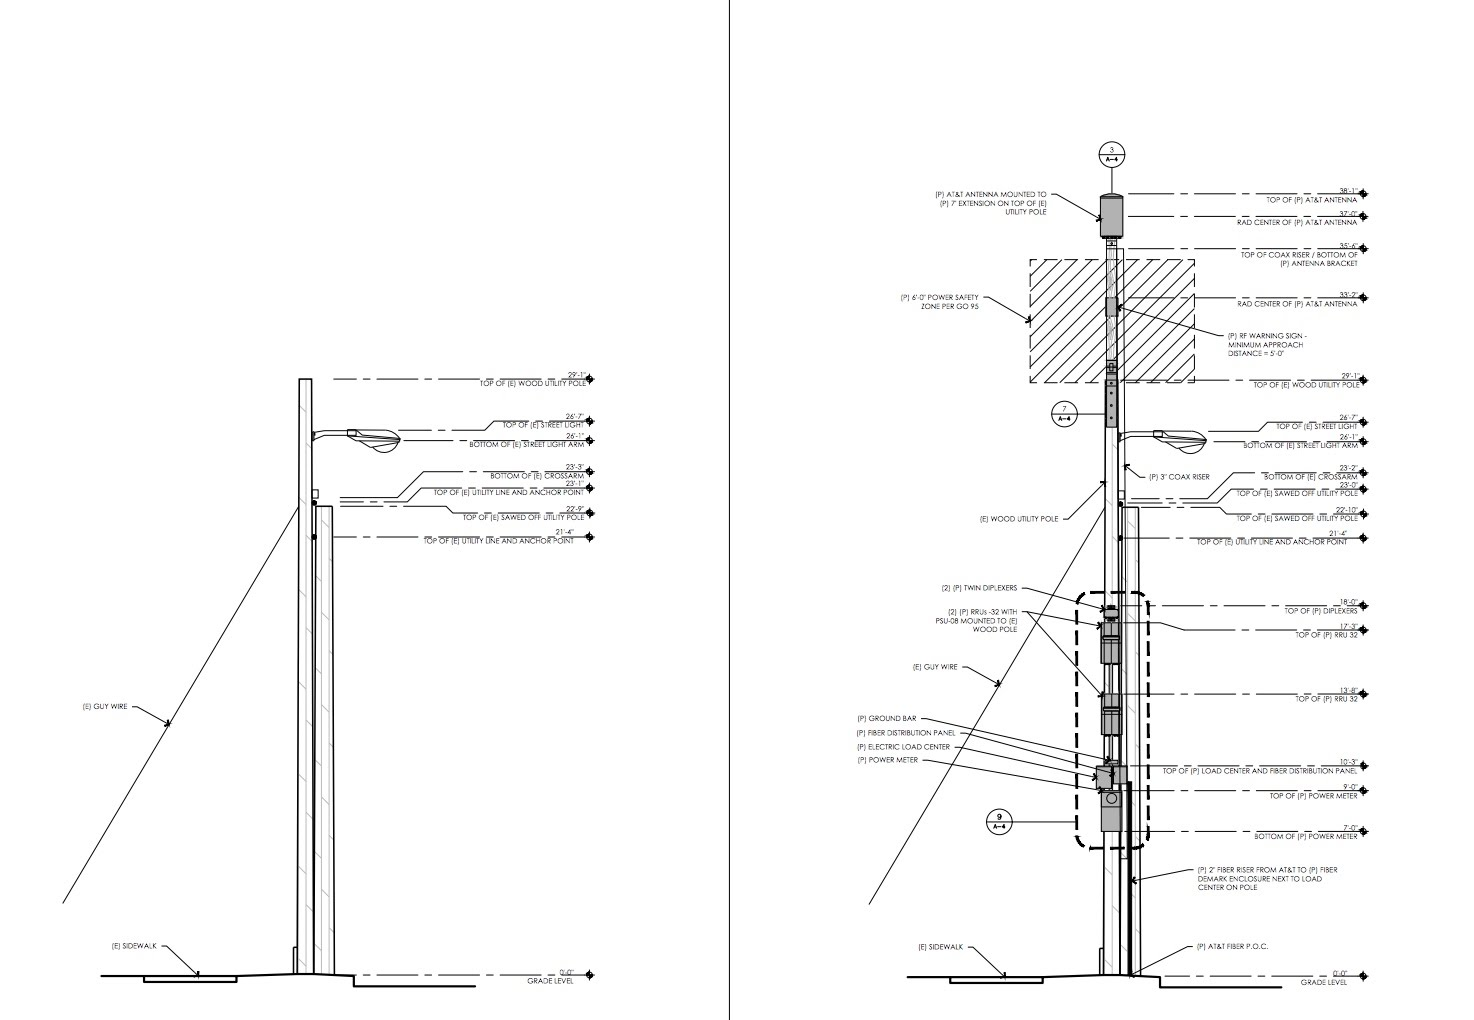 Proposed Burlingame Residential Cell Antennas